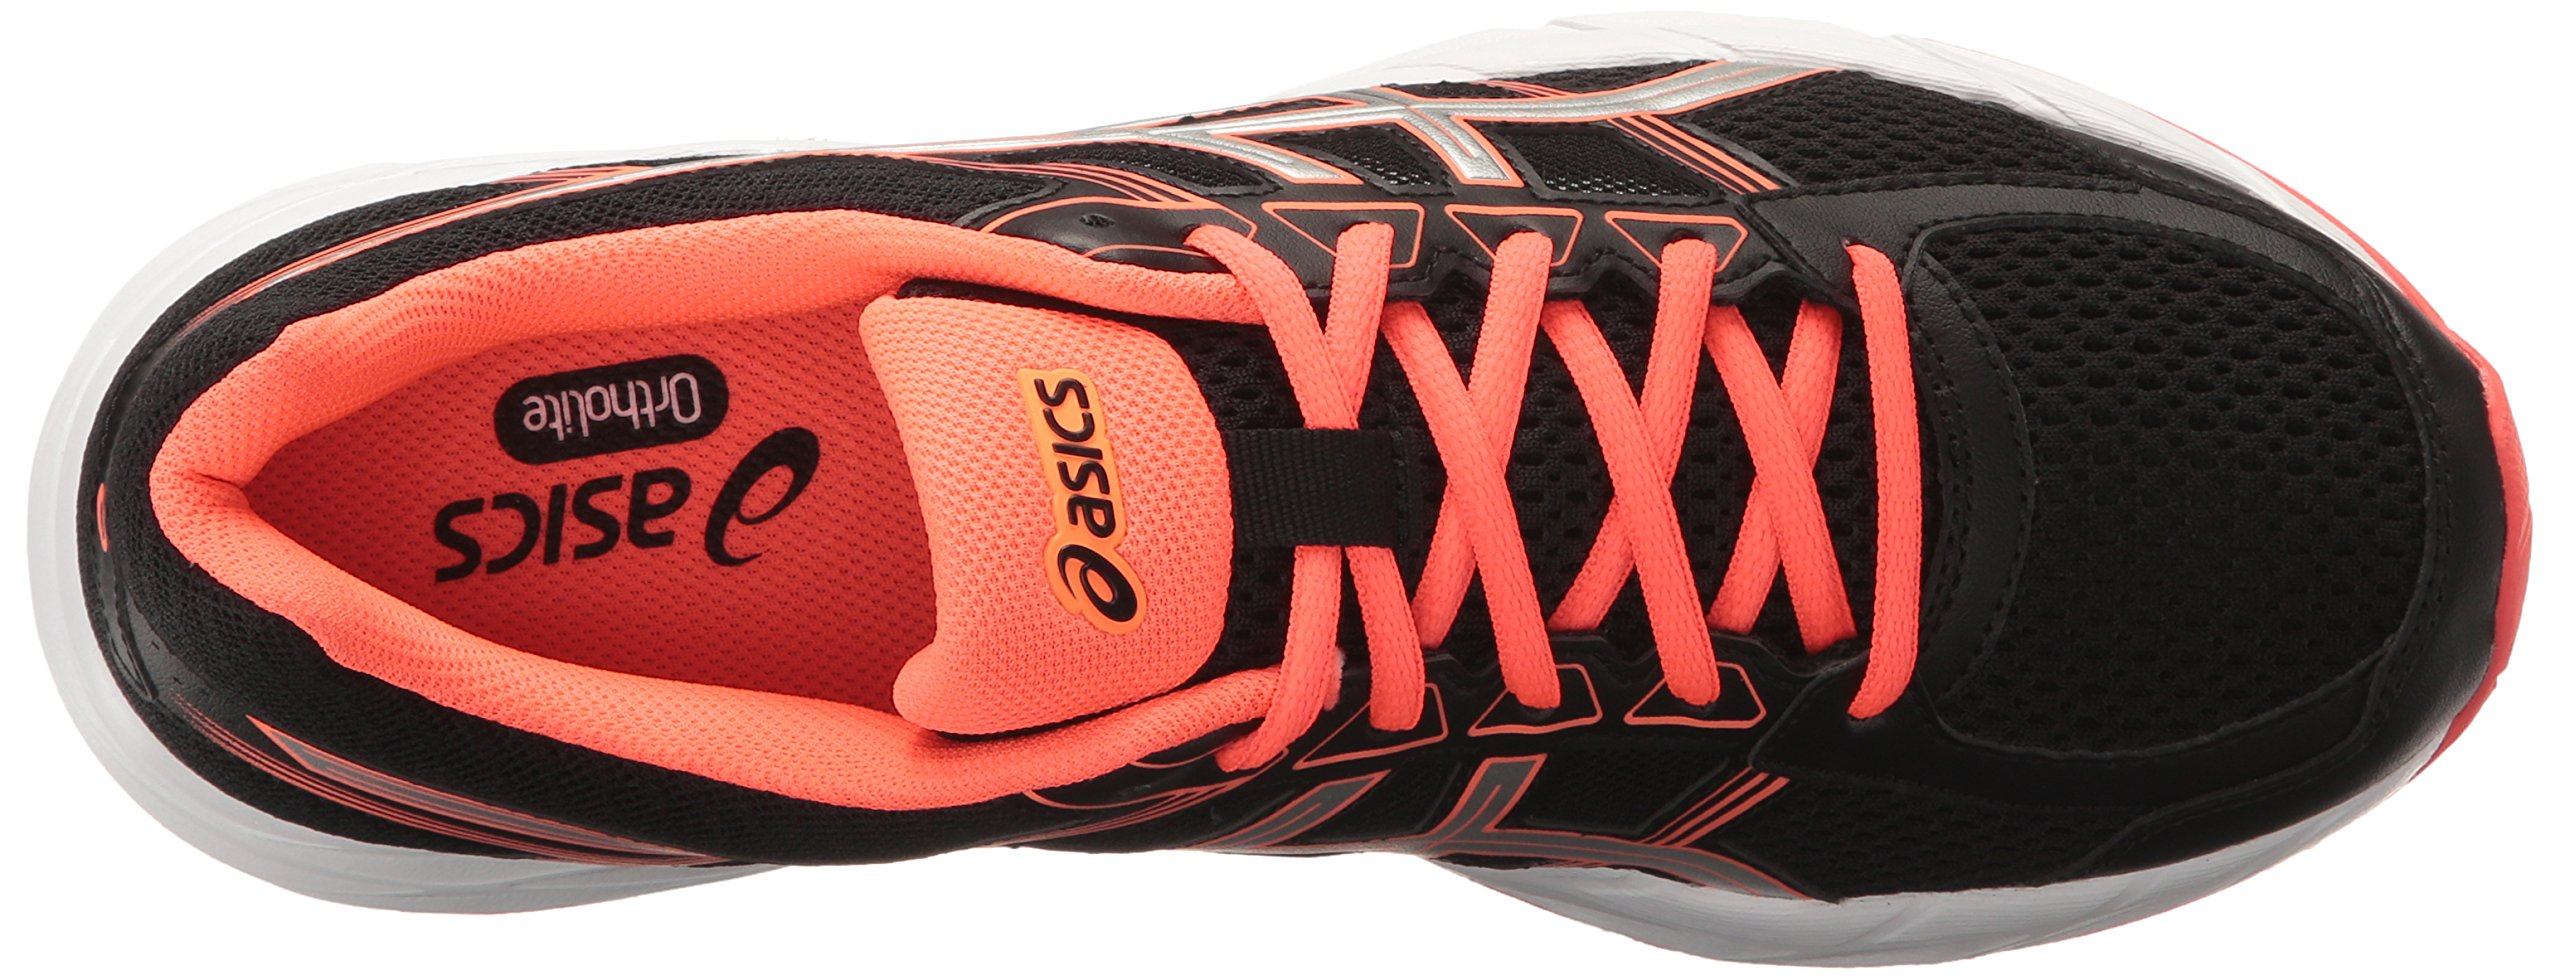 ASICS Women's Gel-Contend 4 Running Shoe, Black/Silver/Flash Coral, 5 M US by ASICS (Image #8)